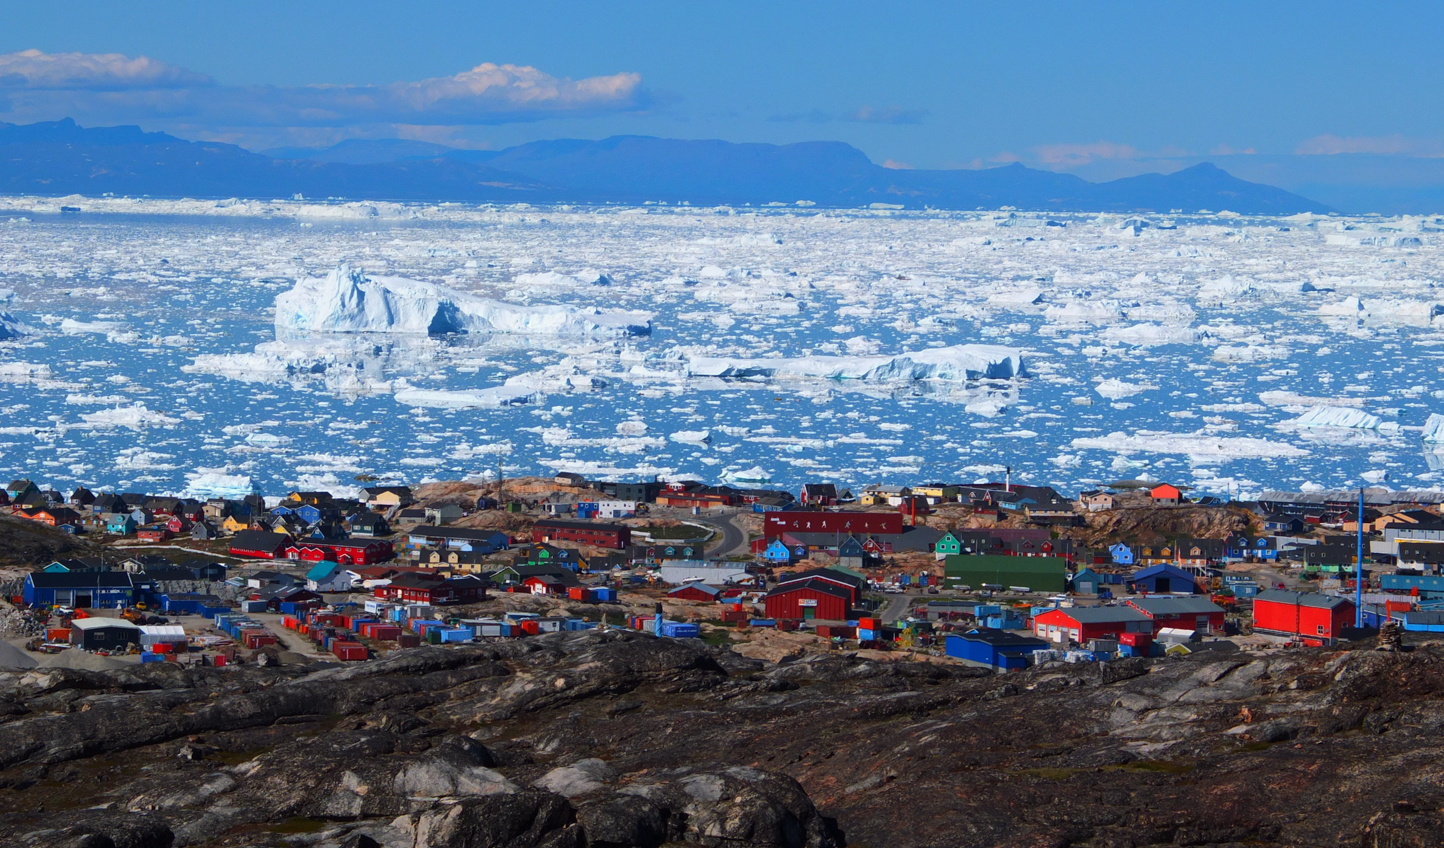 Spend two full days in the charming town of Ilulissat